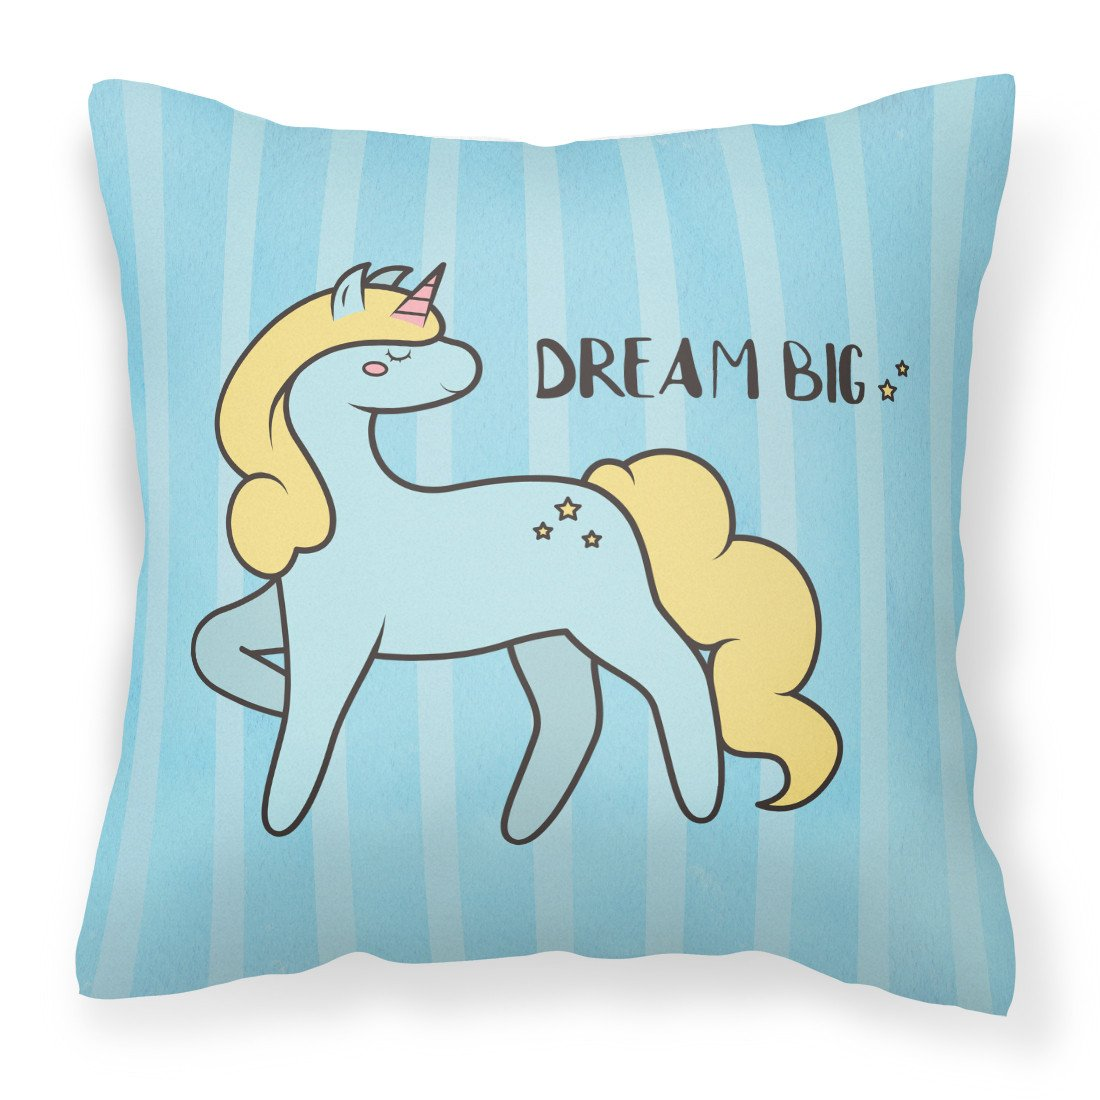 Nursery Dream Big Unicorn Fabric Decorative Pillow BB7471PW1818 by Caroline's Treasures